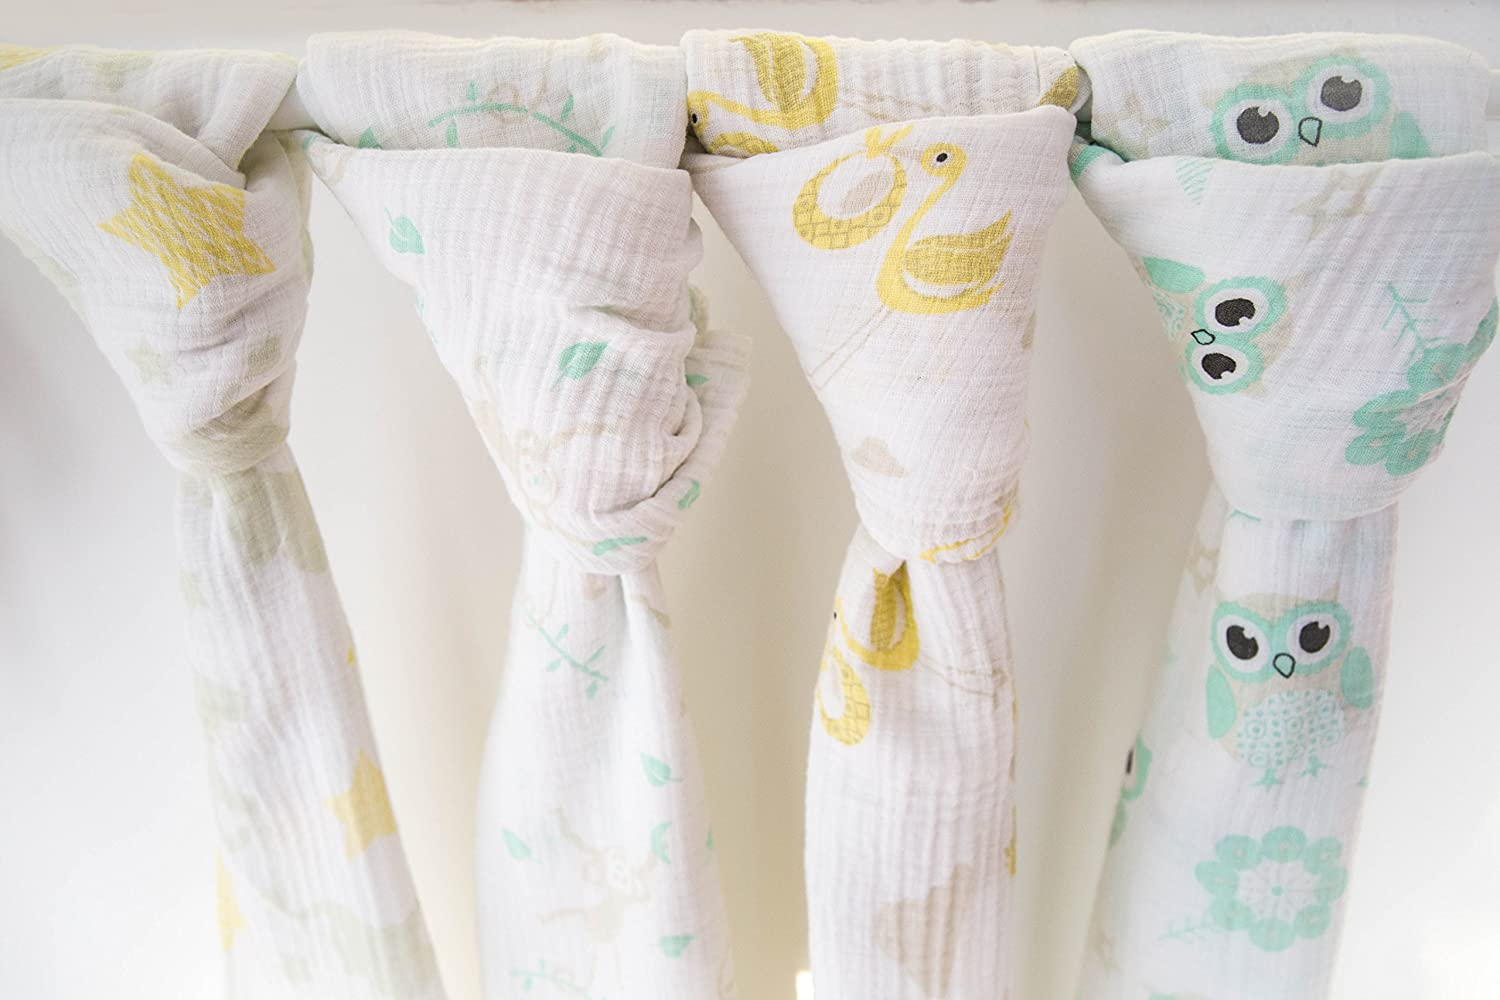 4 x Extra Large Unisex 100% Soft Cotton Baby Muslin Swaddle Blankets - 120cm x 120cm (47 inch x 47 inch) Fun Cute Animal Designs | Owls, Elephants, Monkeys and Birds | Perfect Baby Shower Gift iSwaddle